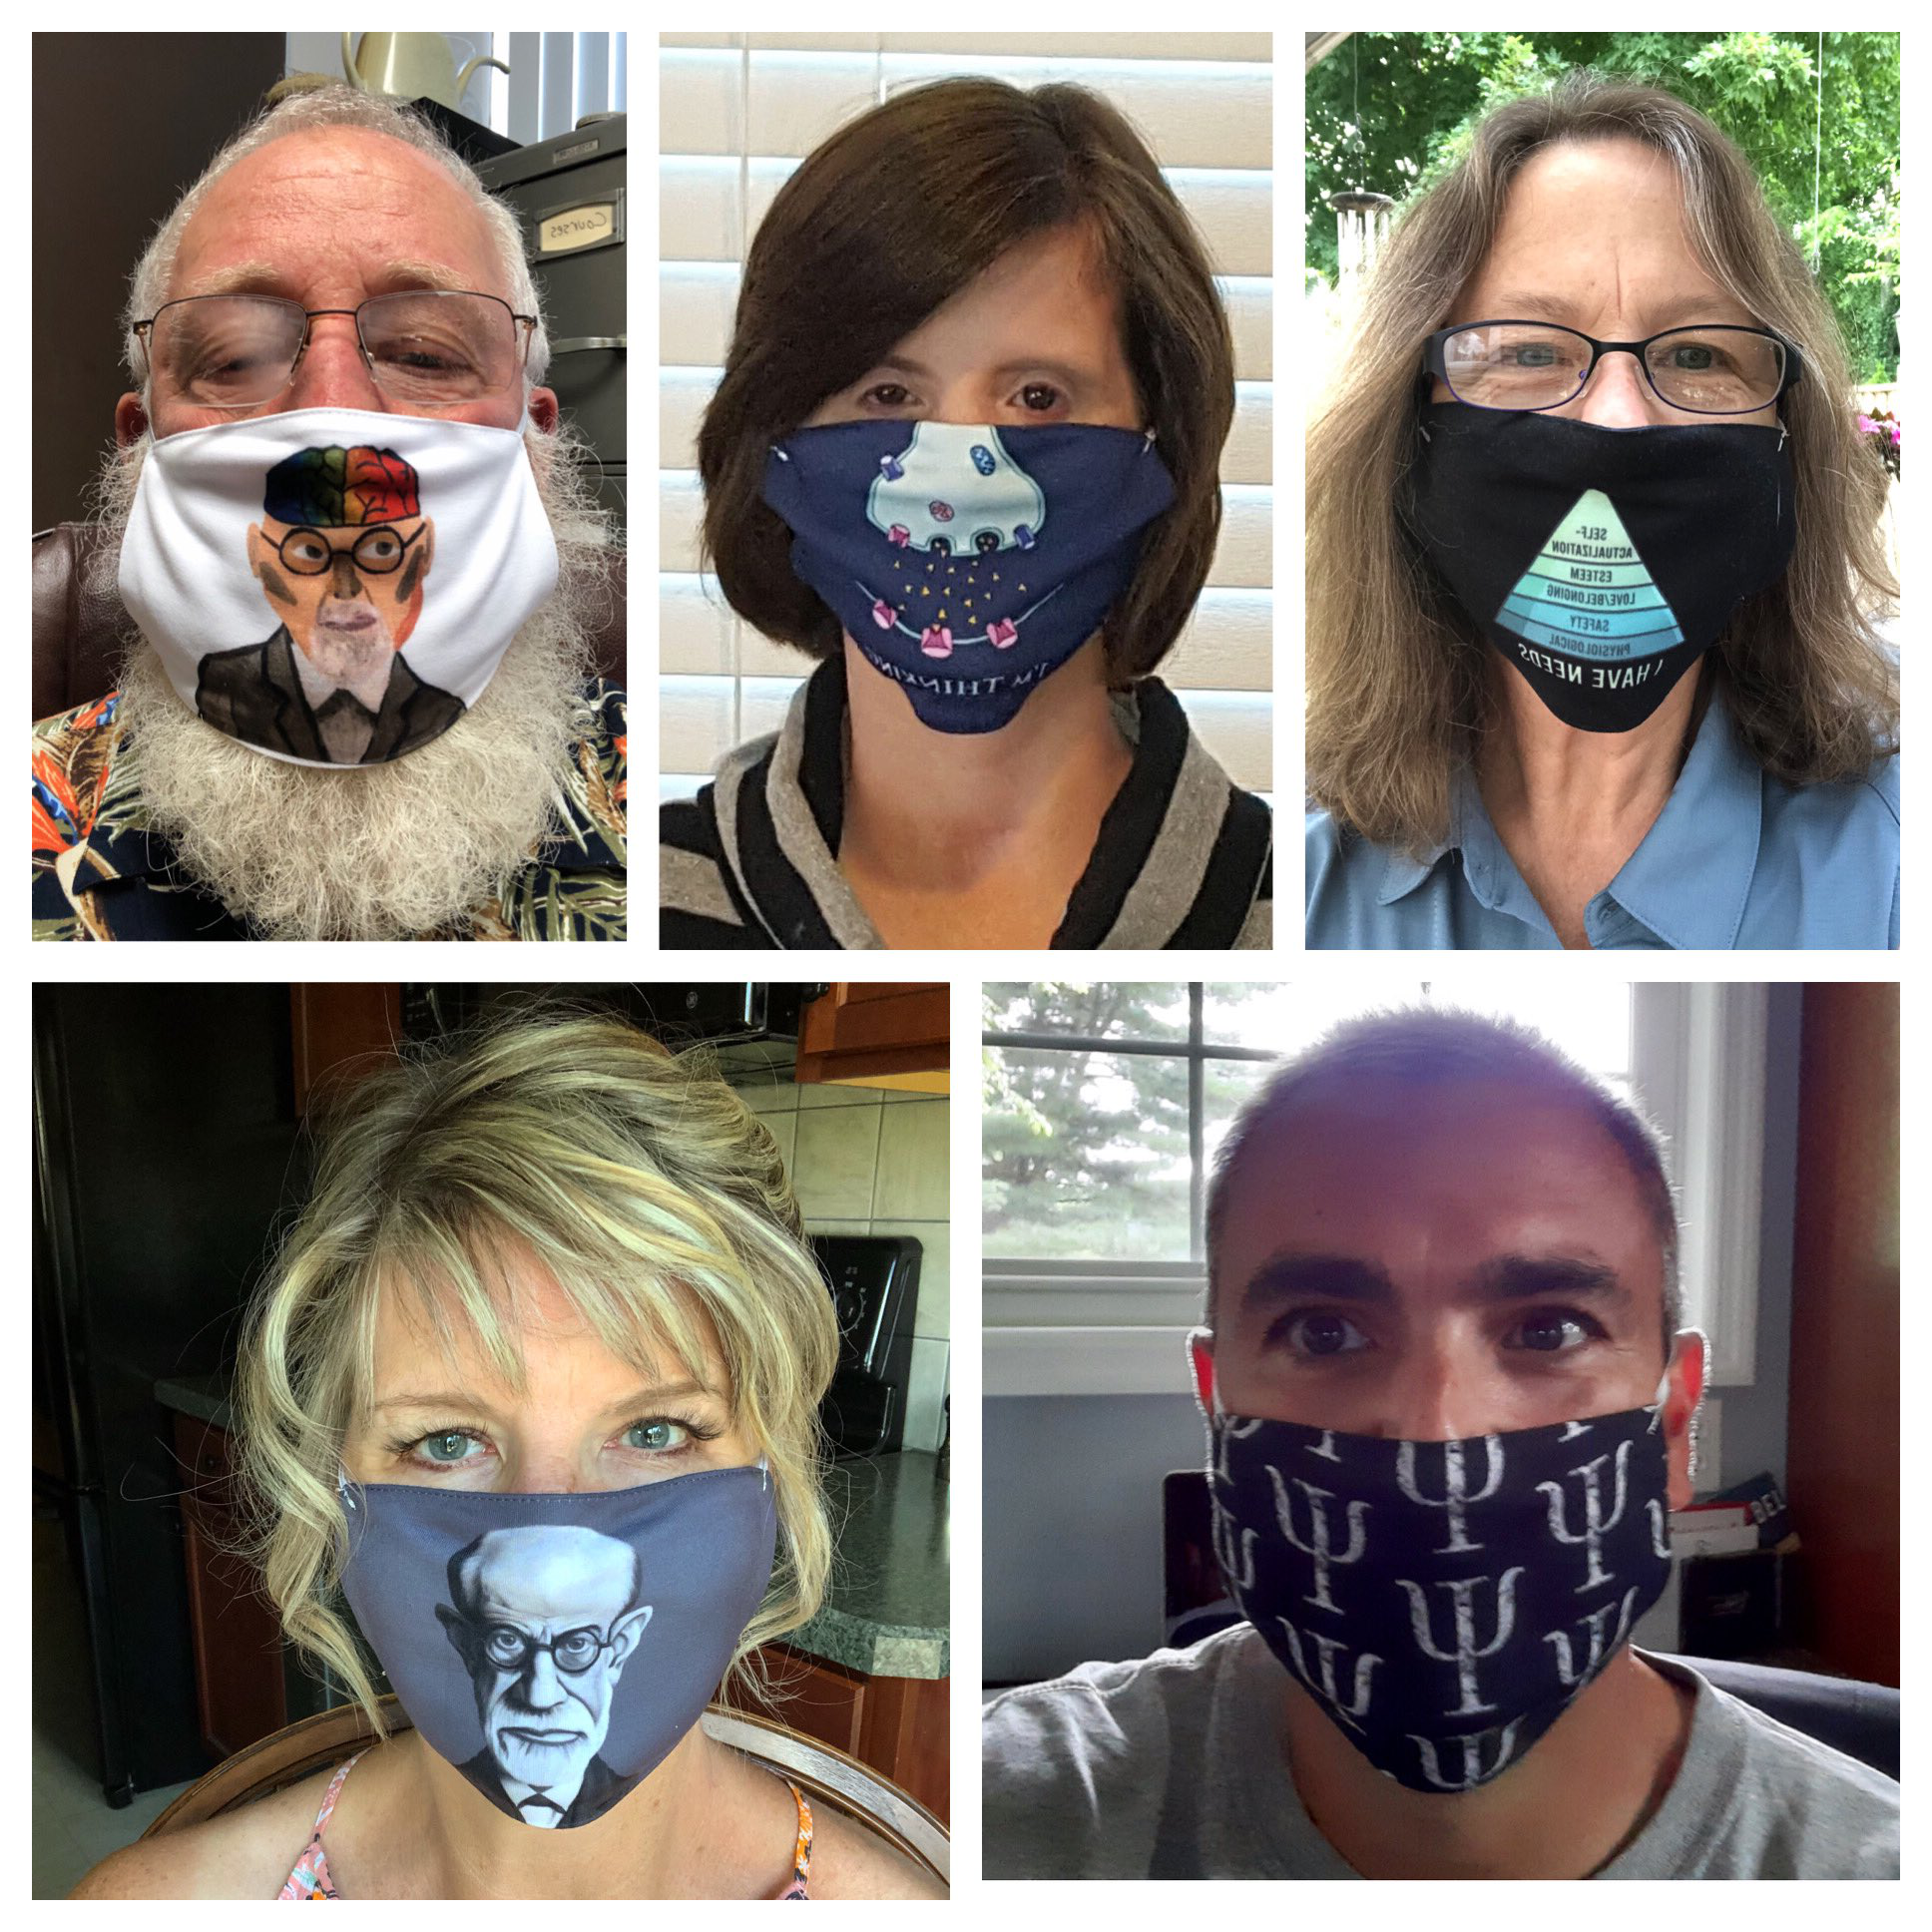 psychology staff wearing masks